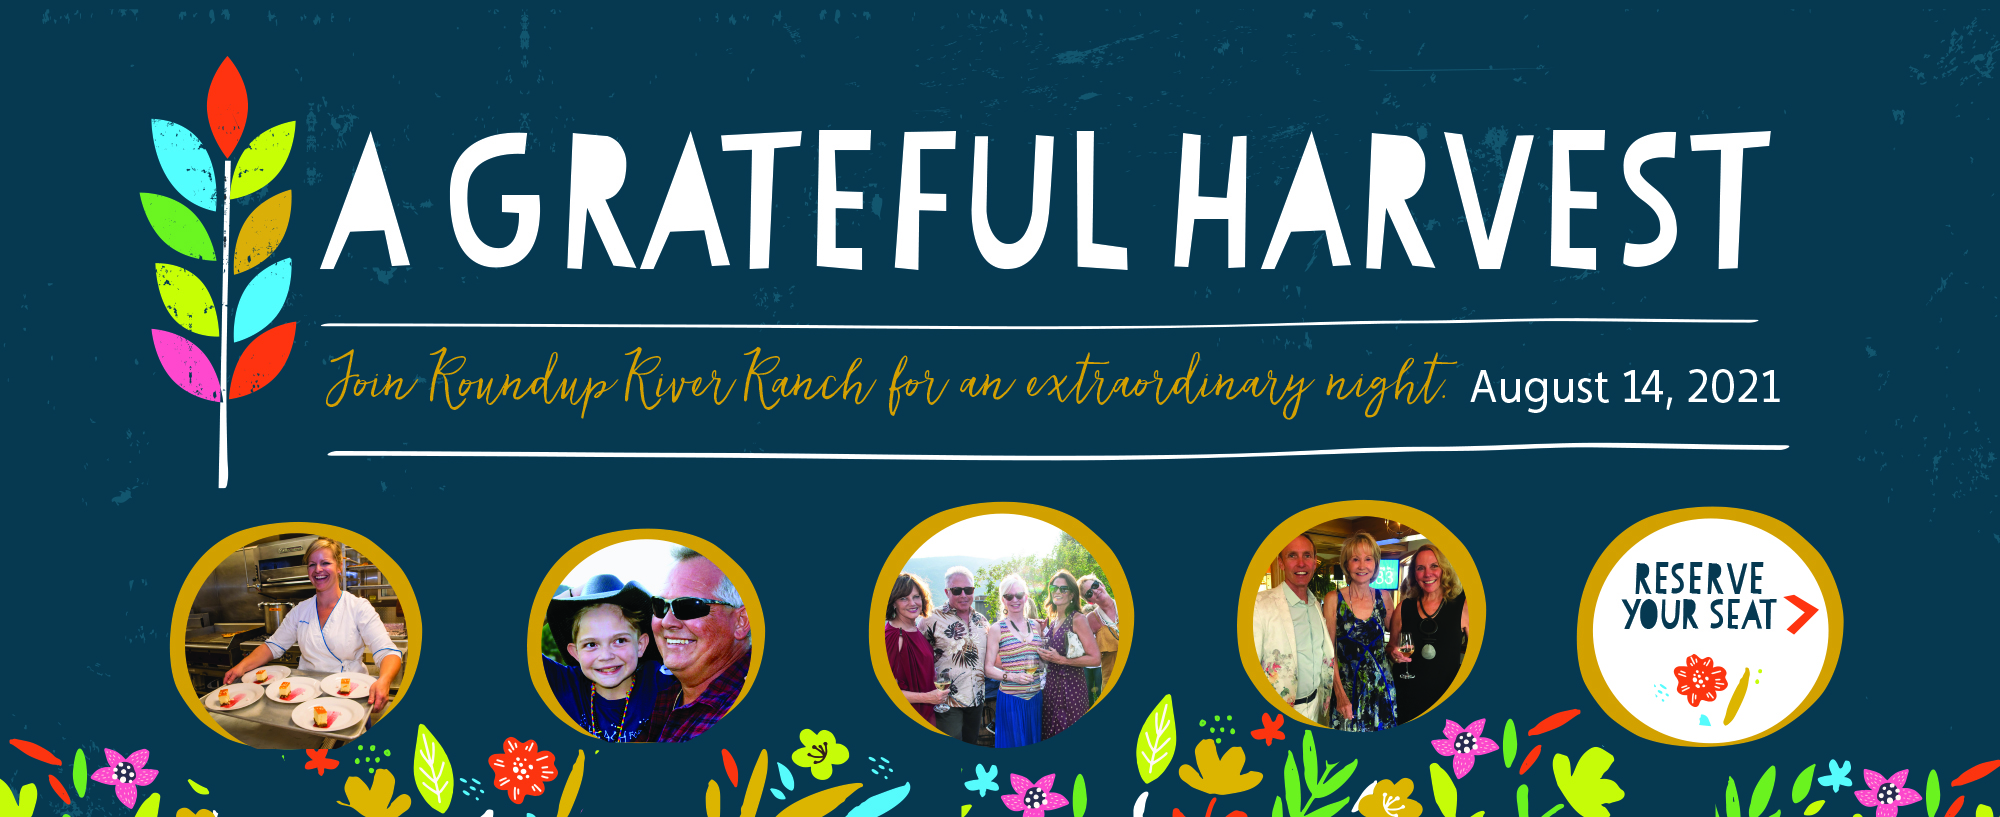 A Grateful Harvest. Join Roundup River Ranch for an extraordinary night. August 14, 2021